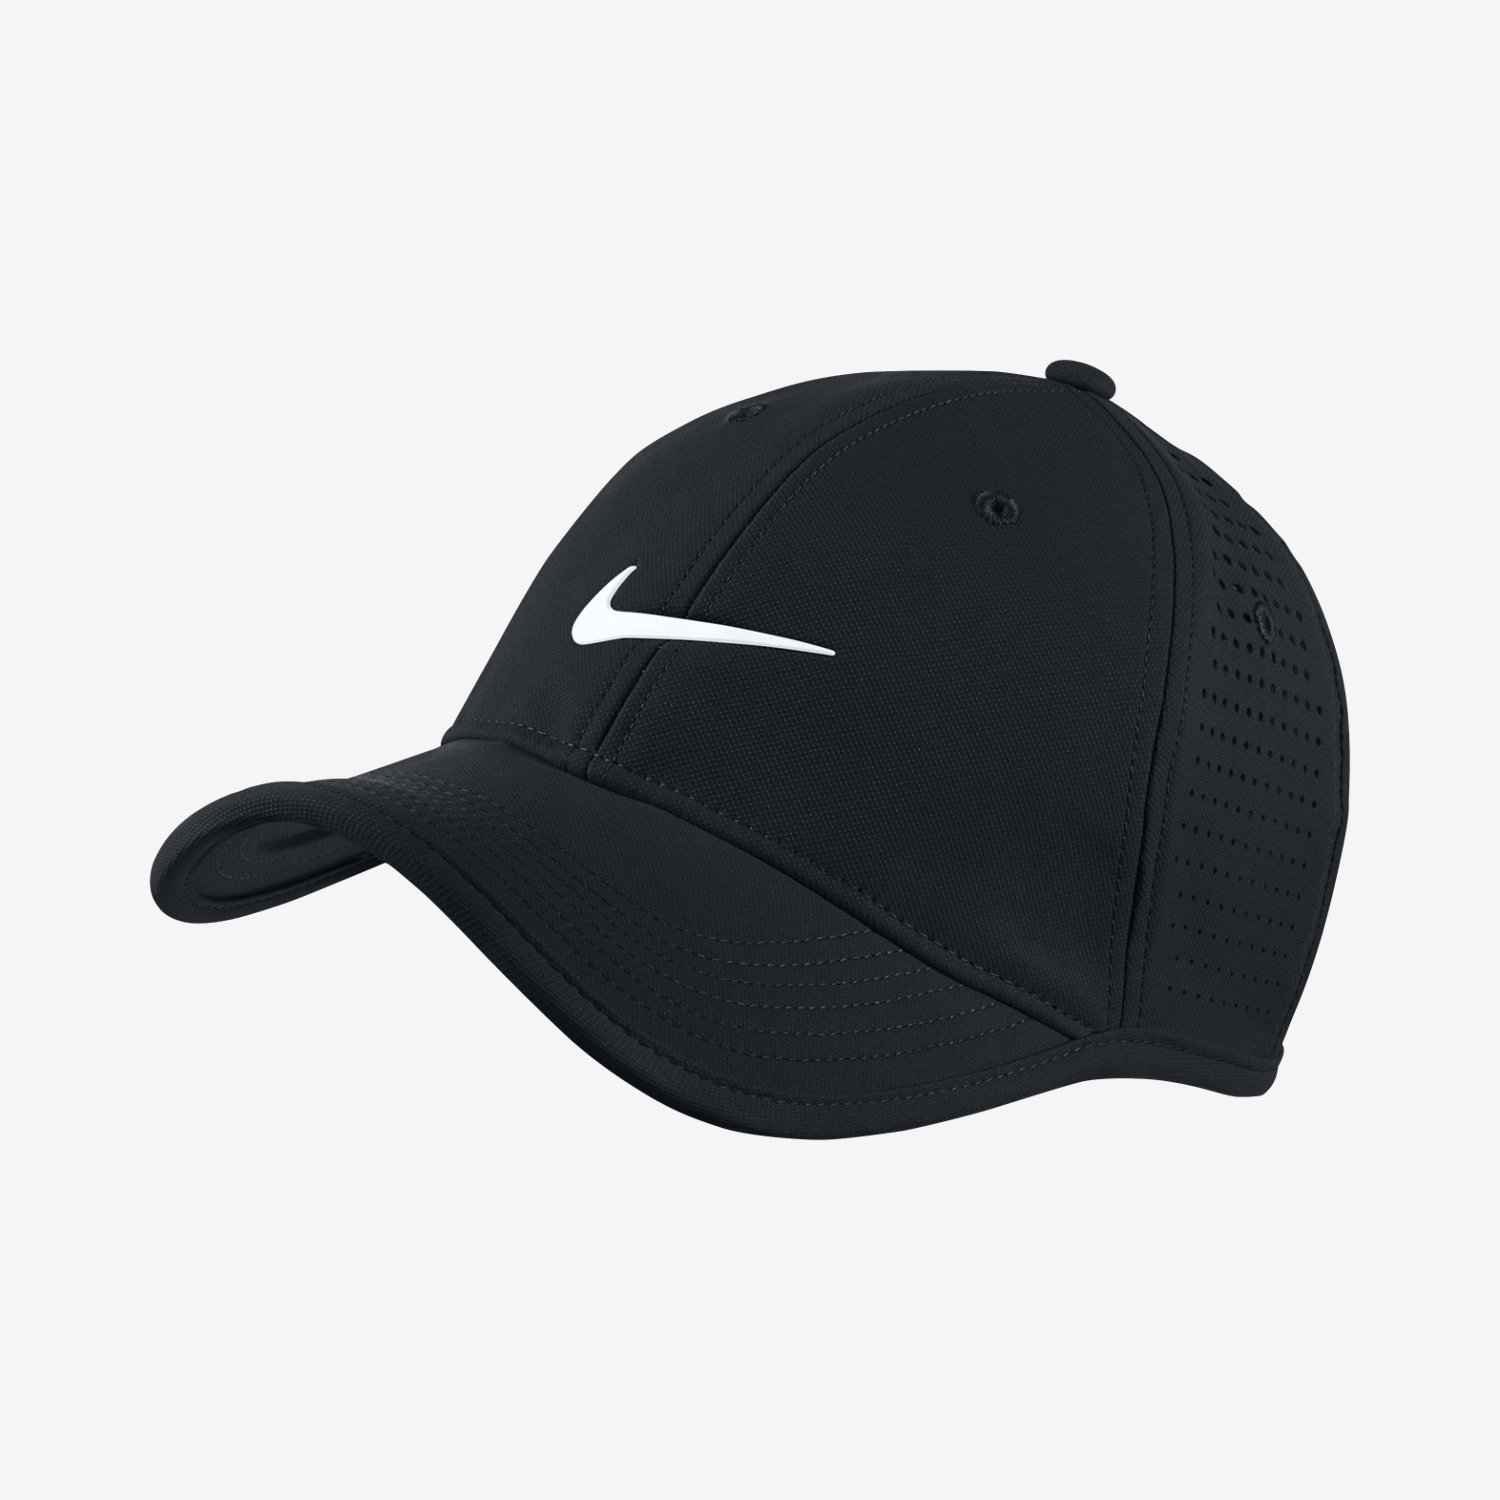 nike casquette golf. Black Bedroom Furniture Sets. Home Design Ideas